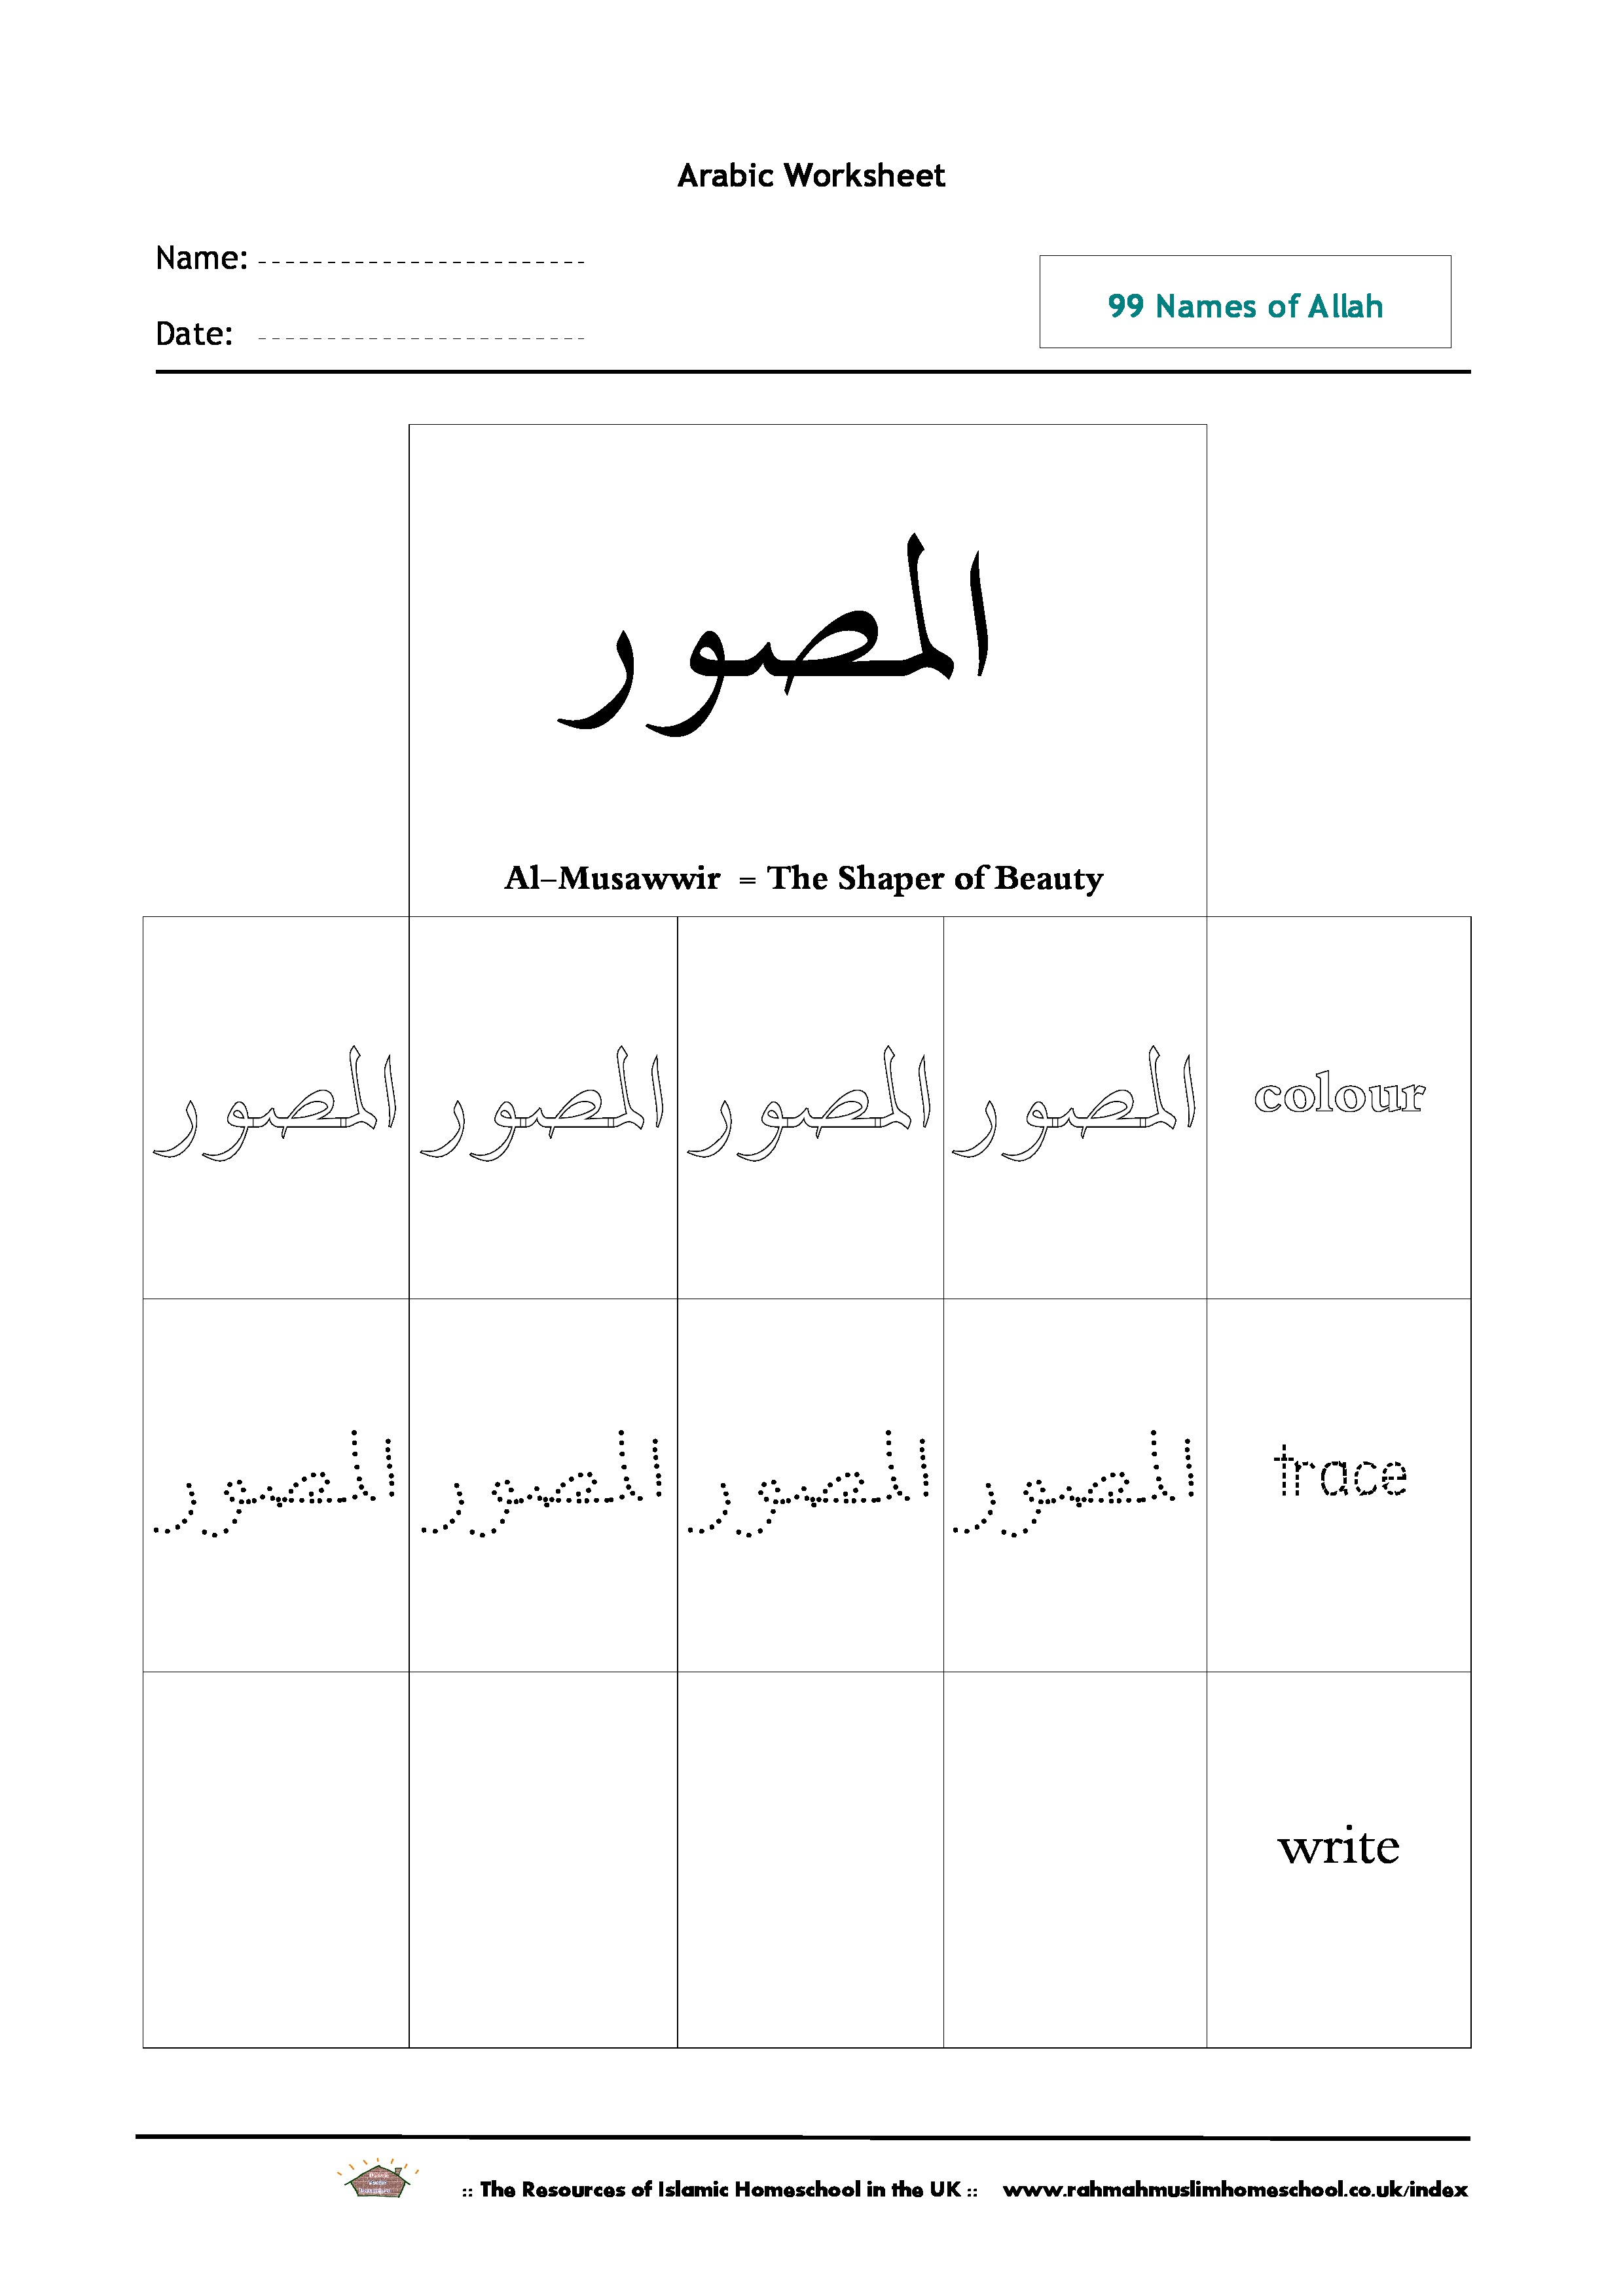 Free Worksheets Part 2 Of The 99 Names Of Allah 9 Pages